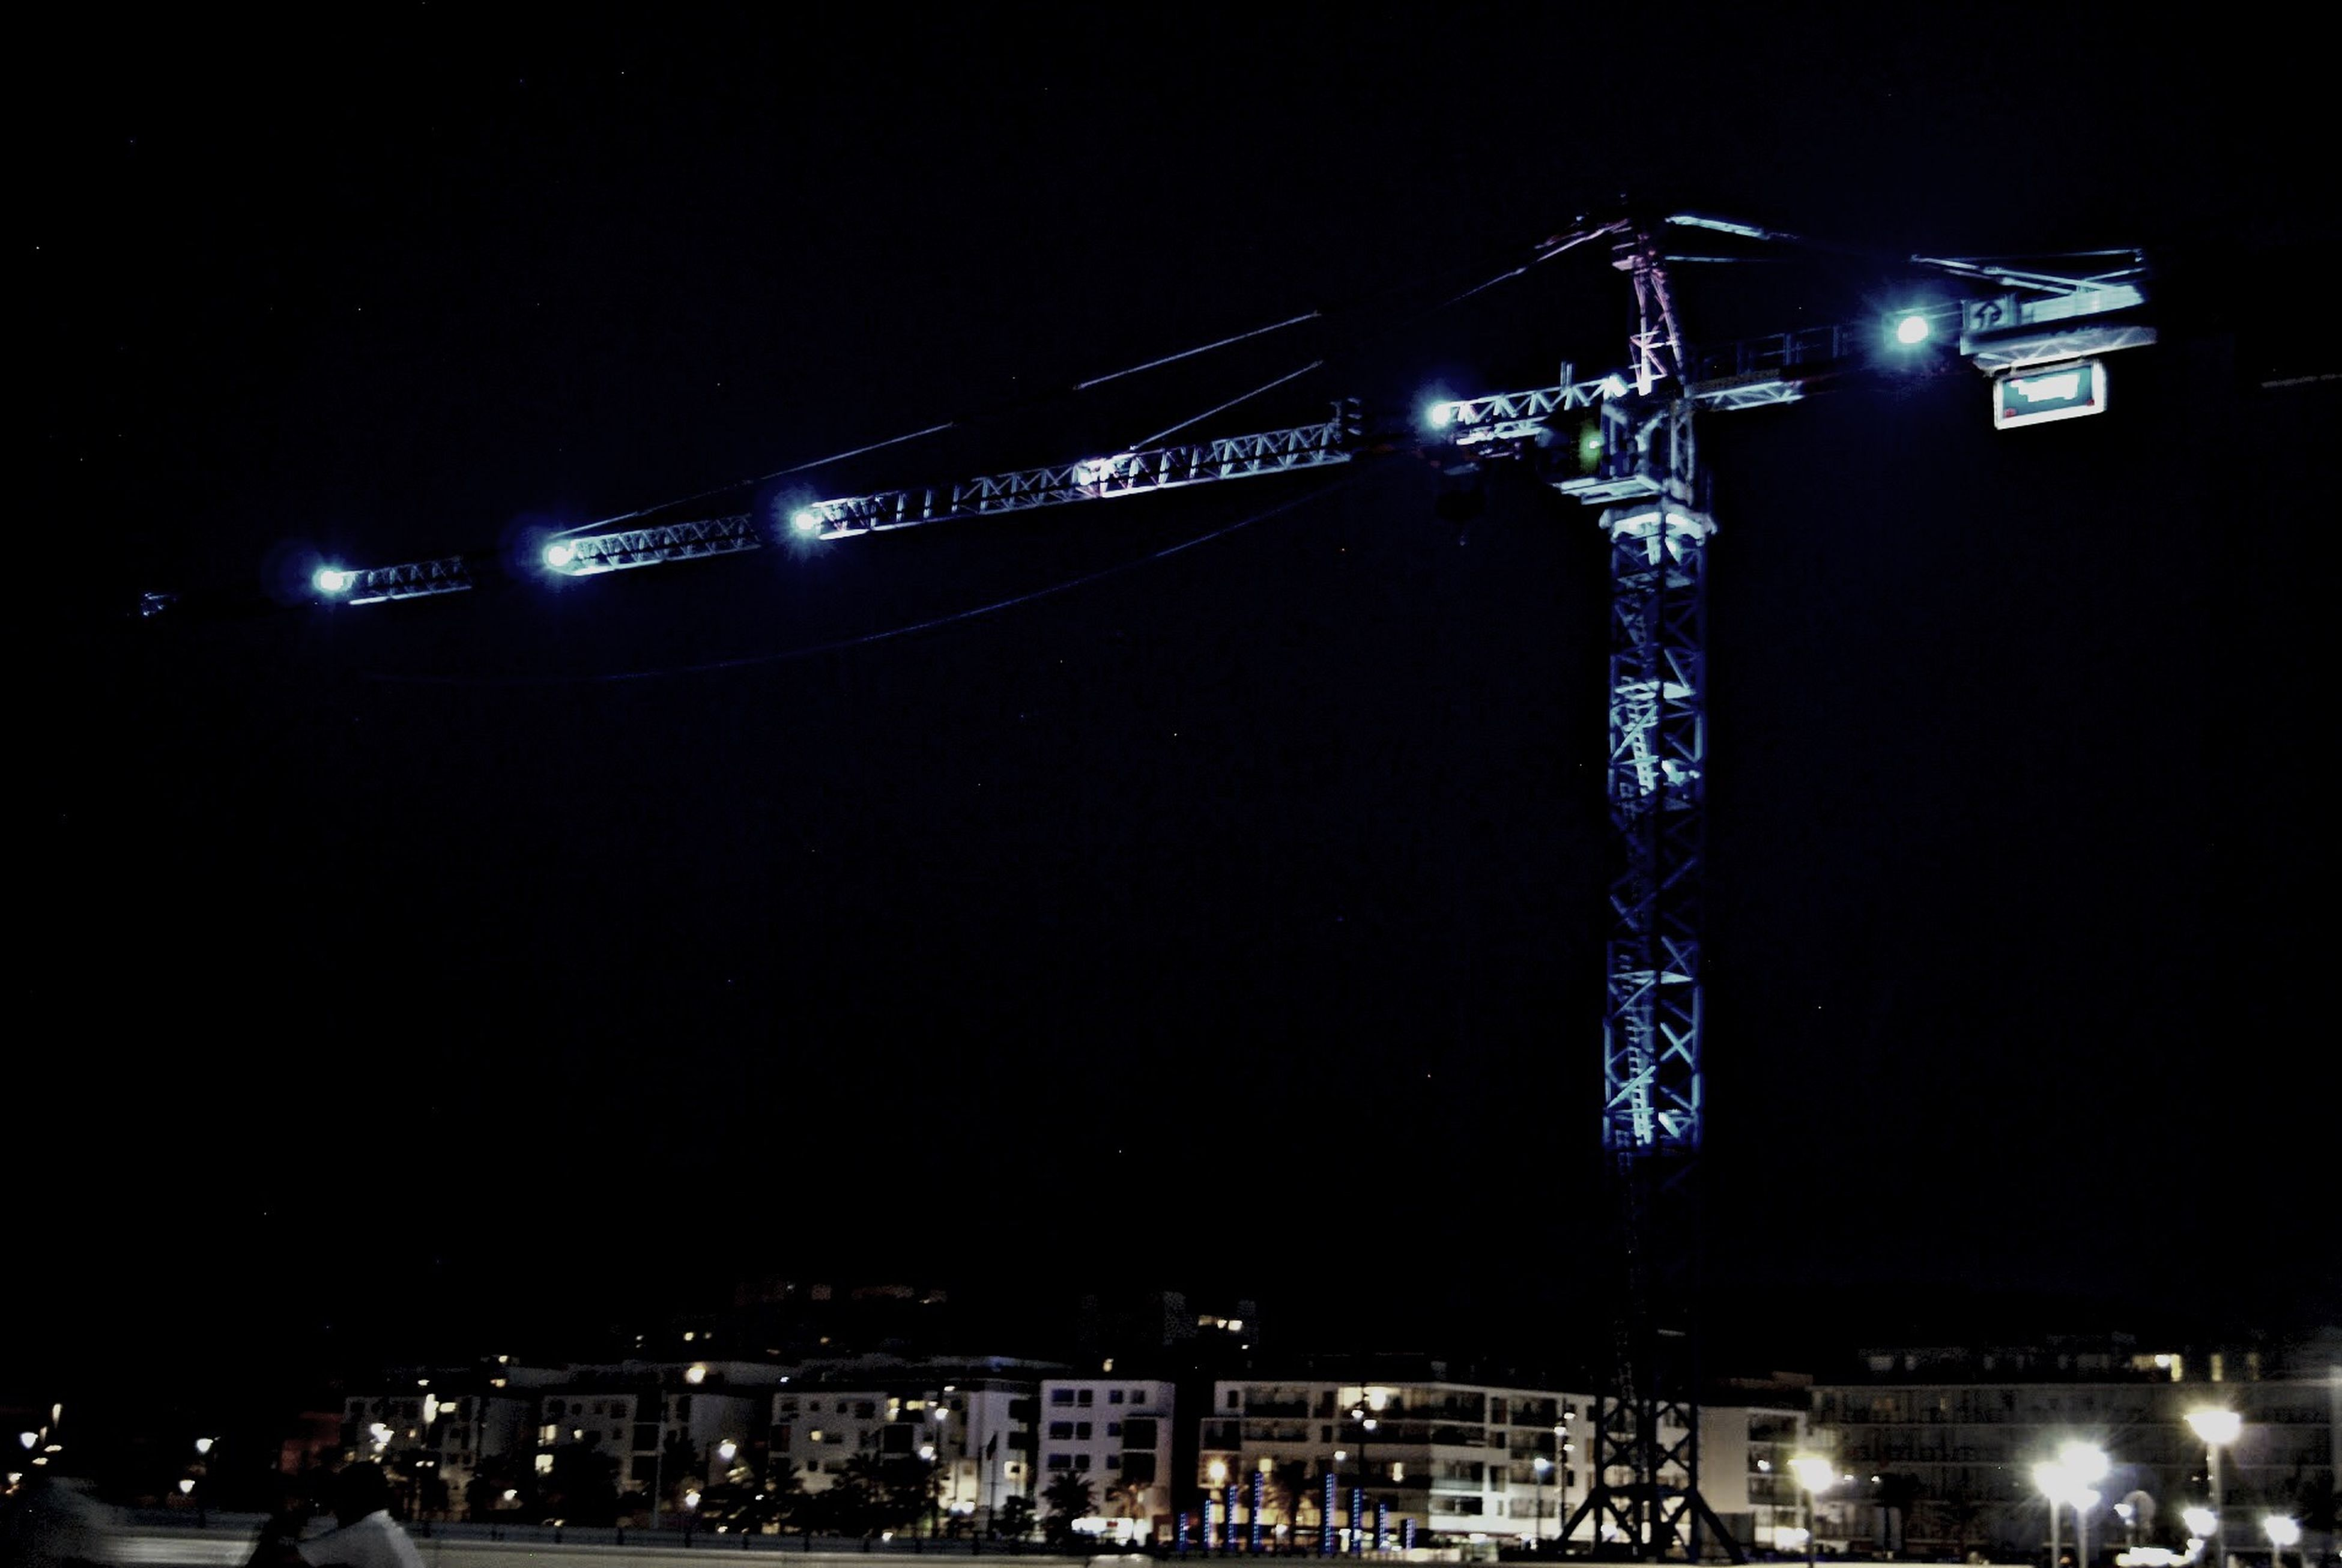 night, illuminated, built structure, architecture, city, transportation, bridge - man made structure, building exterior, engineering, clear sky, connection, water, river, copy space, travel destinations, sky, suspension bridge, low angle view, outdoors, travel